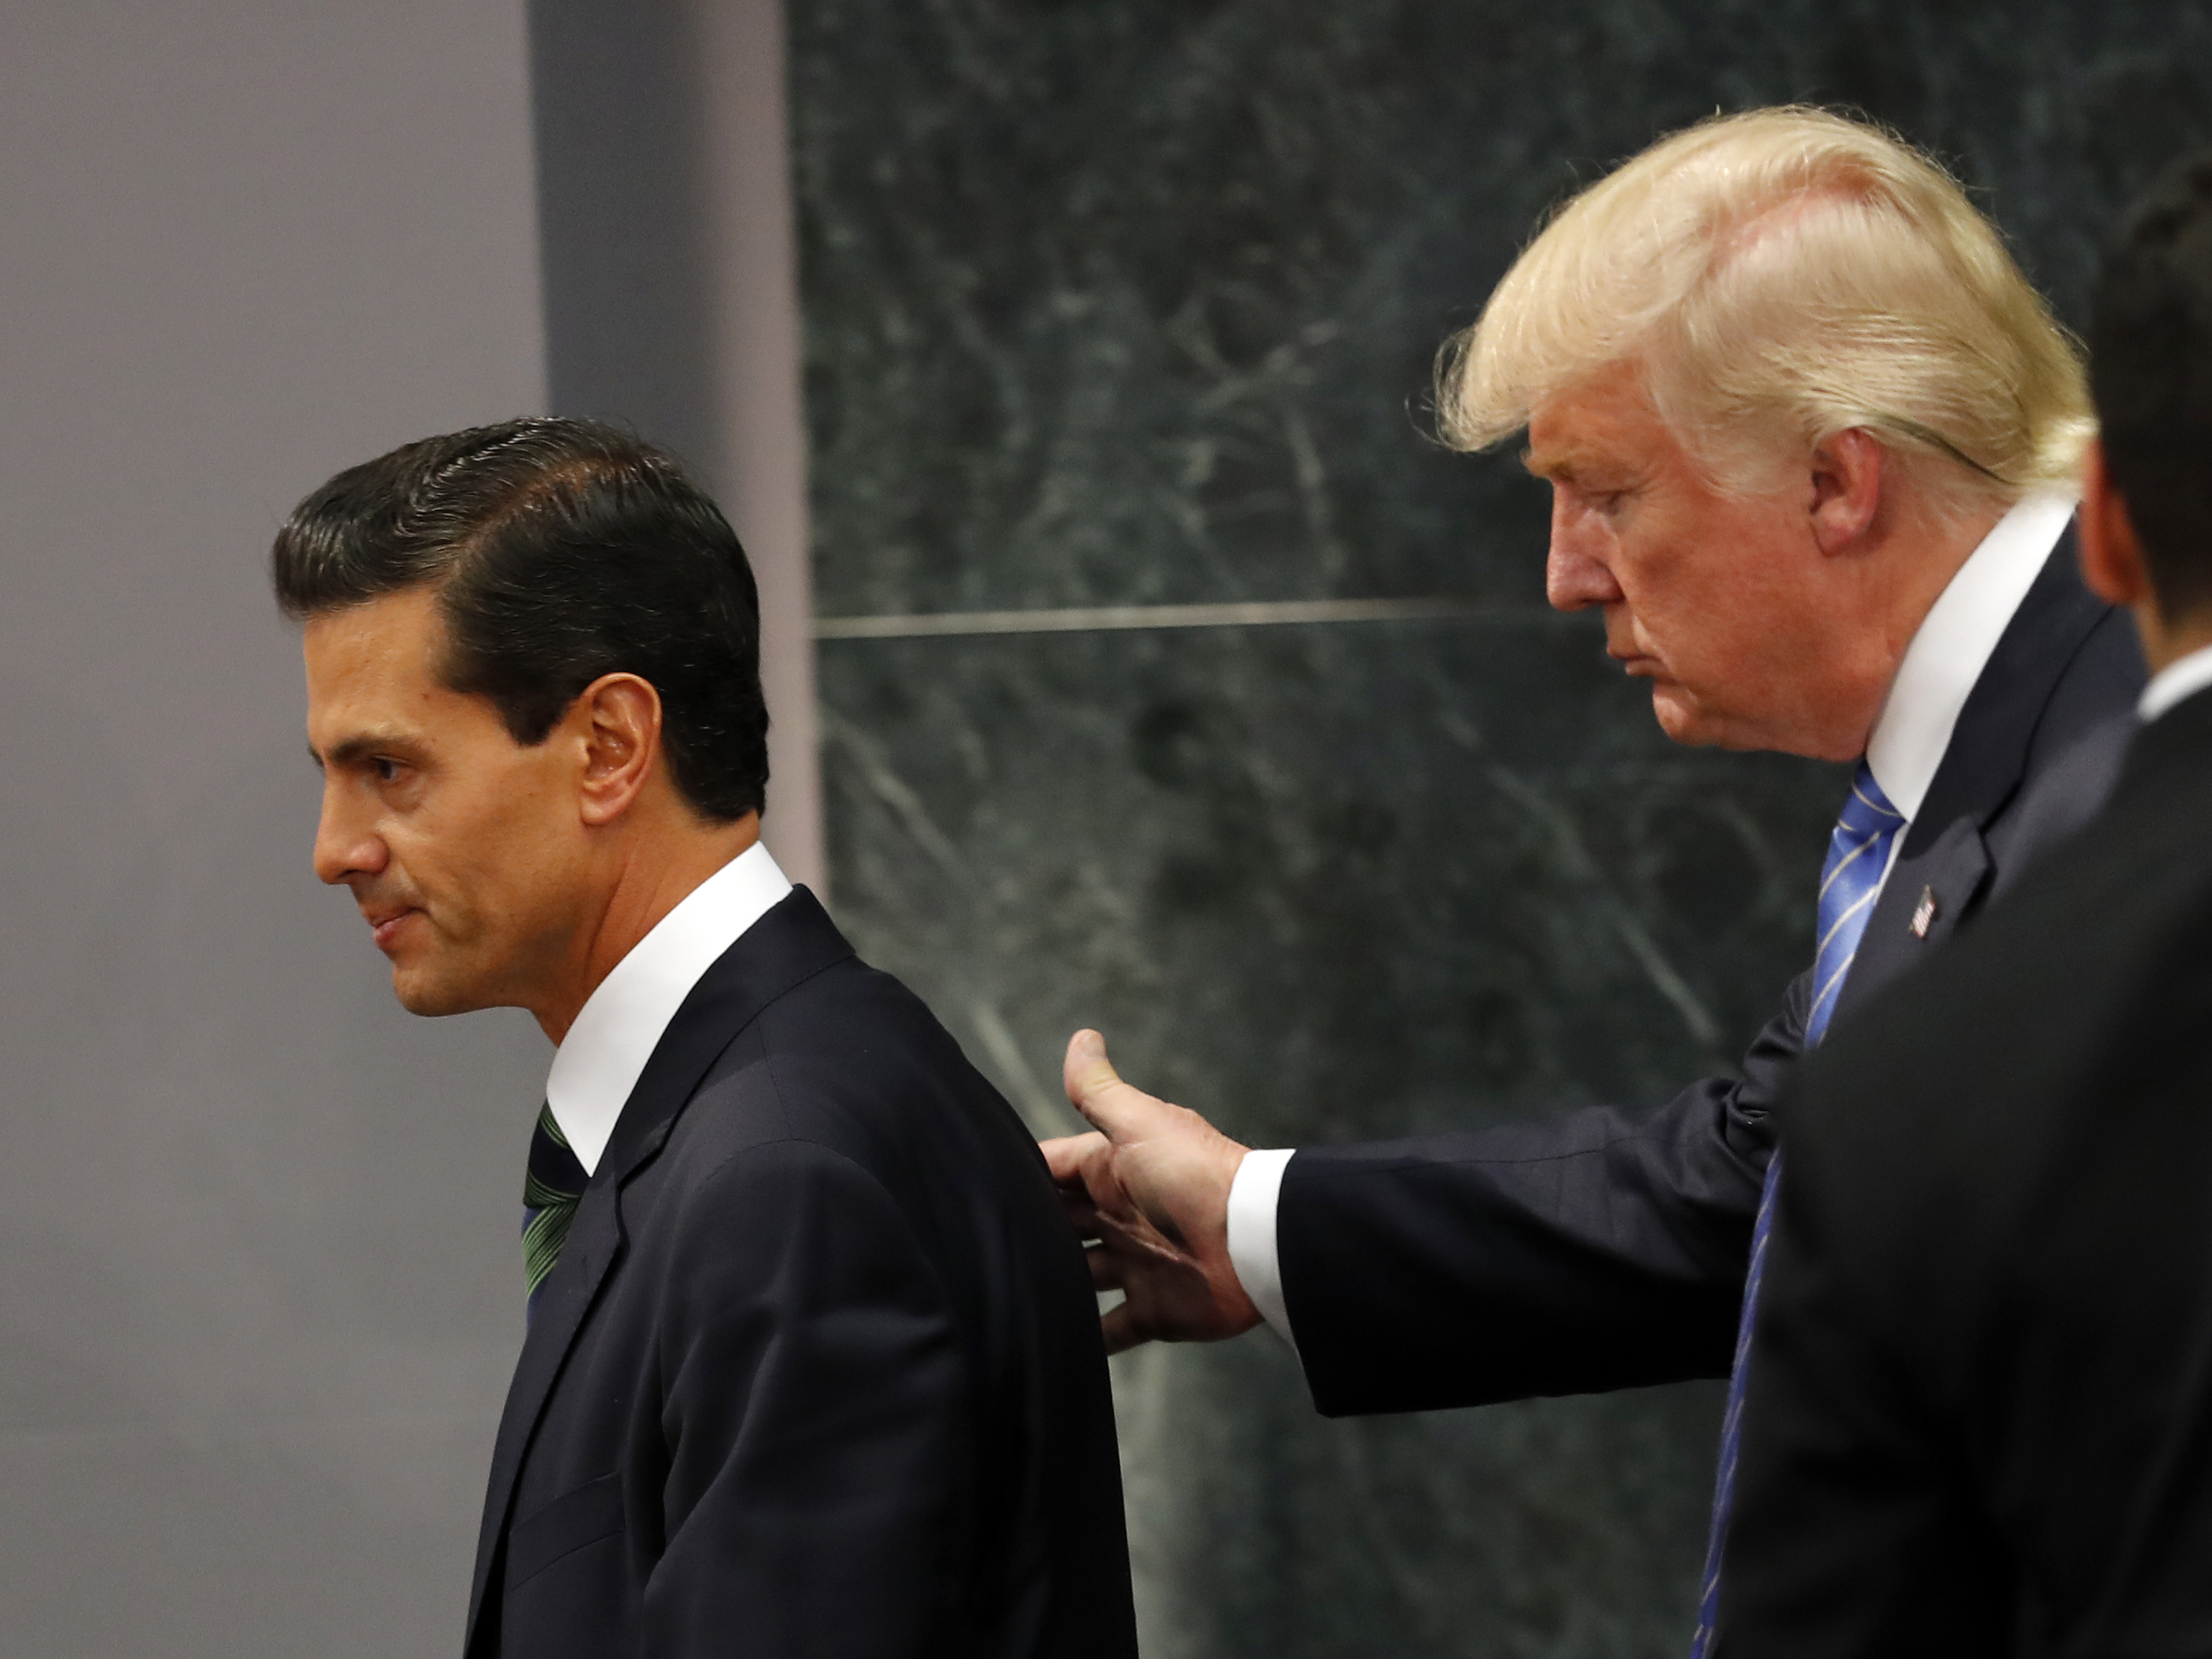 Republican presidential nominee Donald Trump walks with Mexico President Enrique Peña Nieto at the end of their joint statement at Los Pinos, the presidential residence, in Mexico City. (Photo by Dario Lopez-Mills/Associated Press)